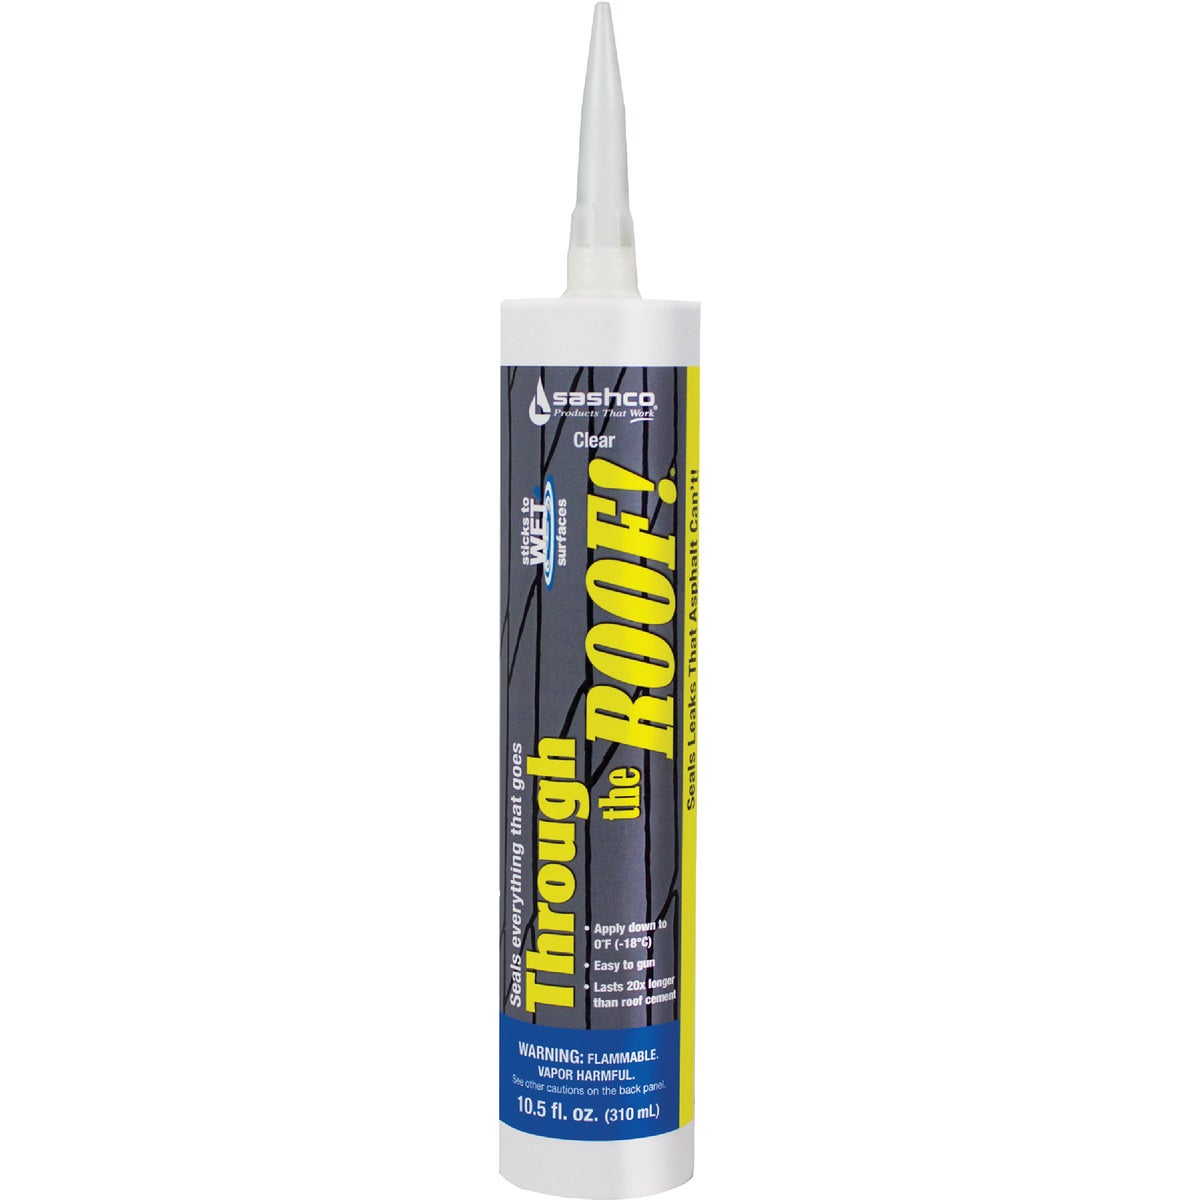 10.5OZ CLR ROOF SEALANT - 14010 by Sashco Sealants Inc